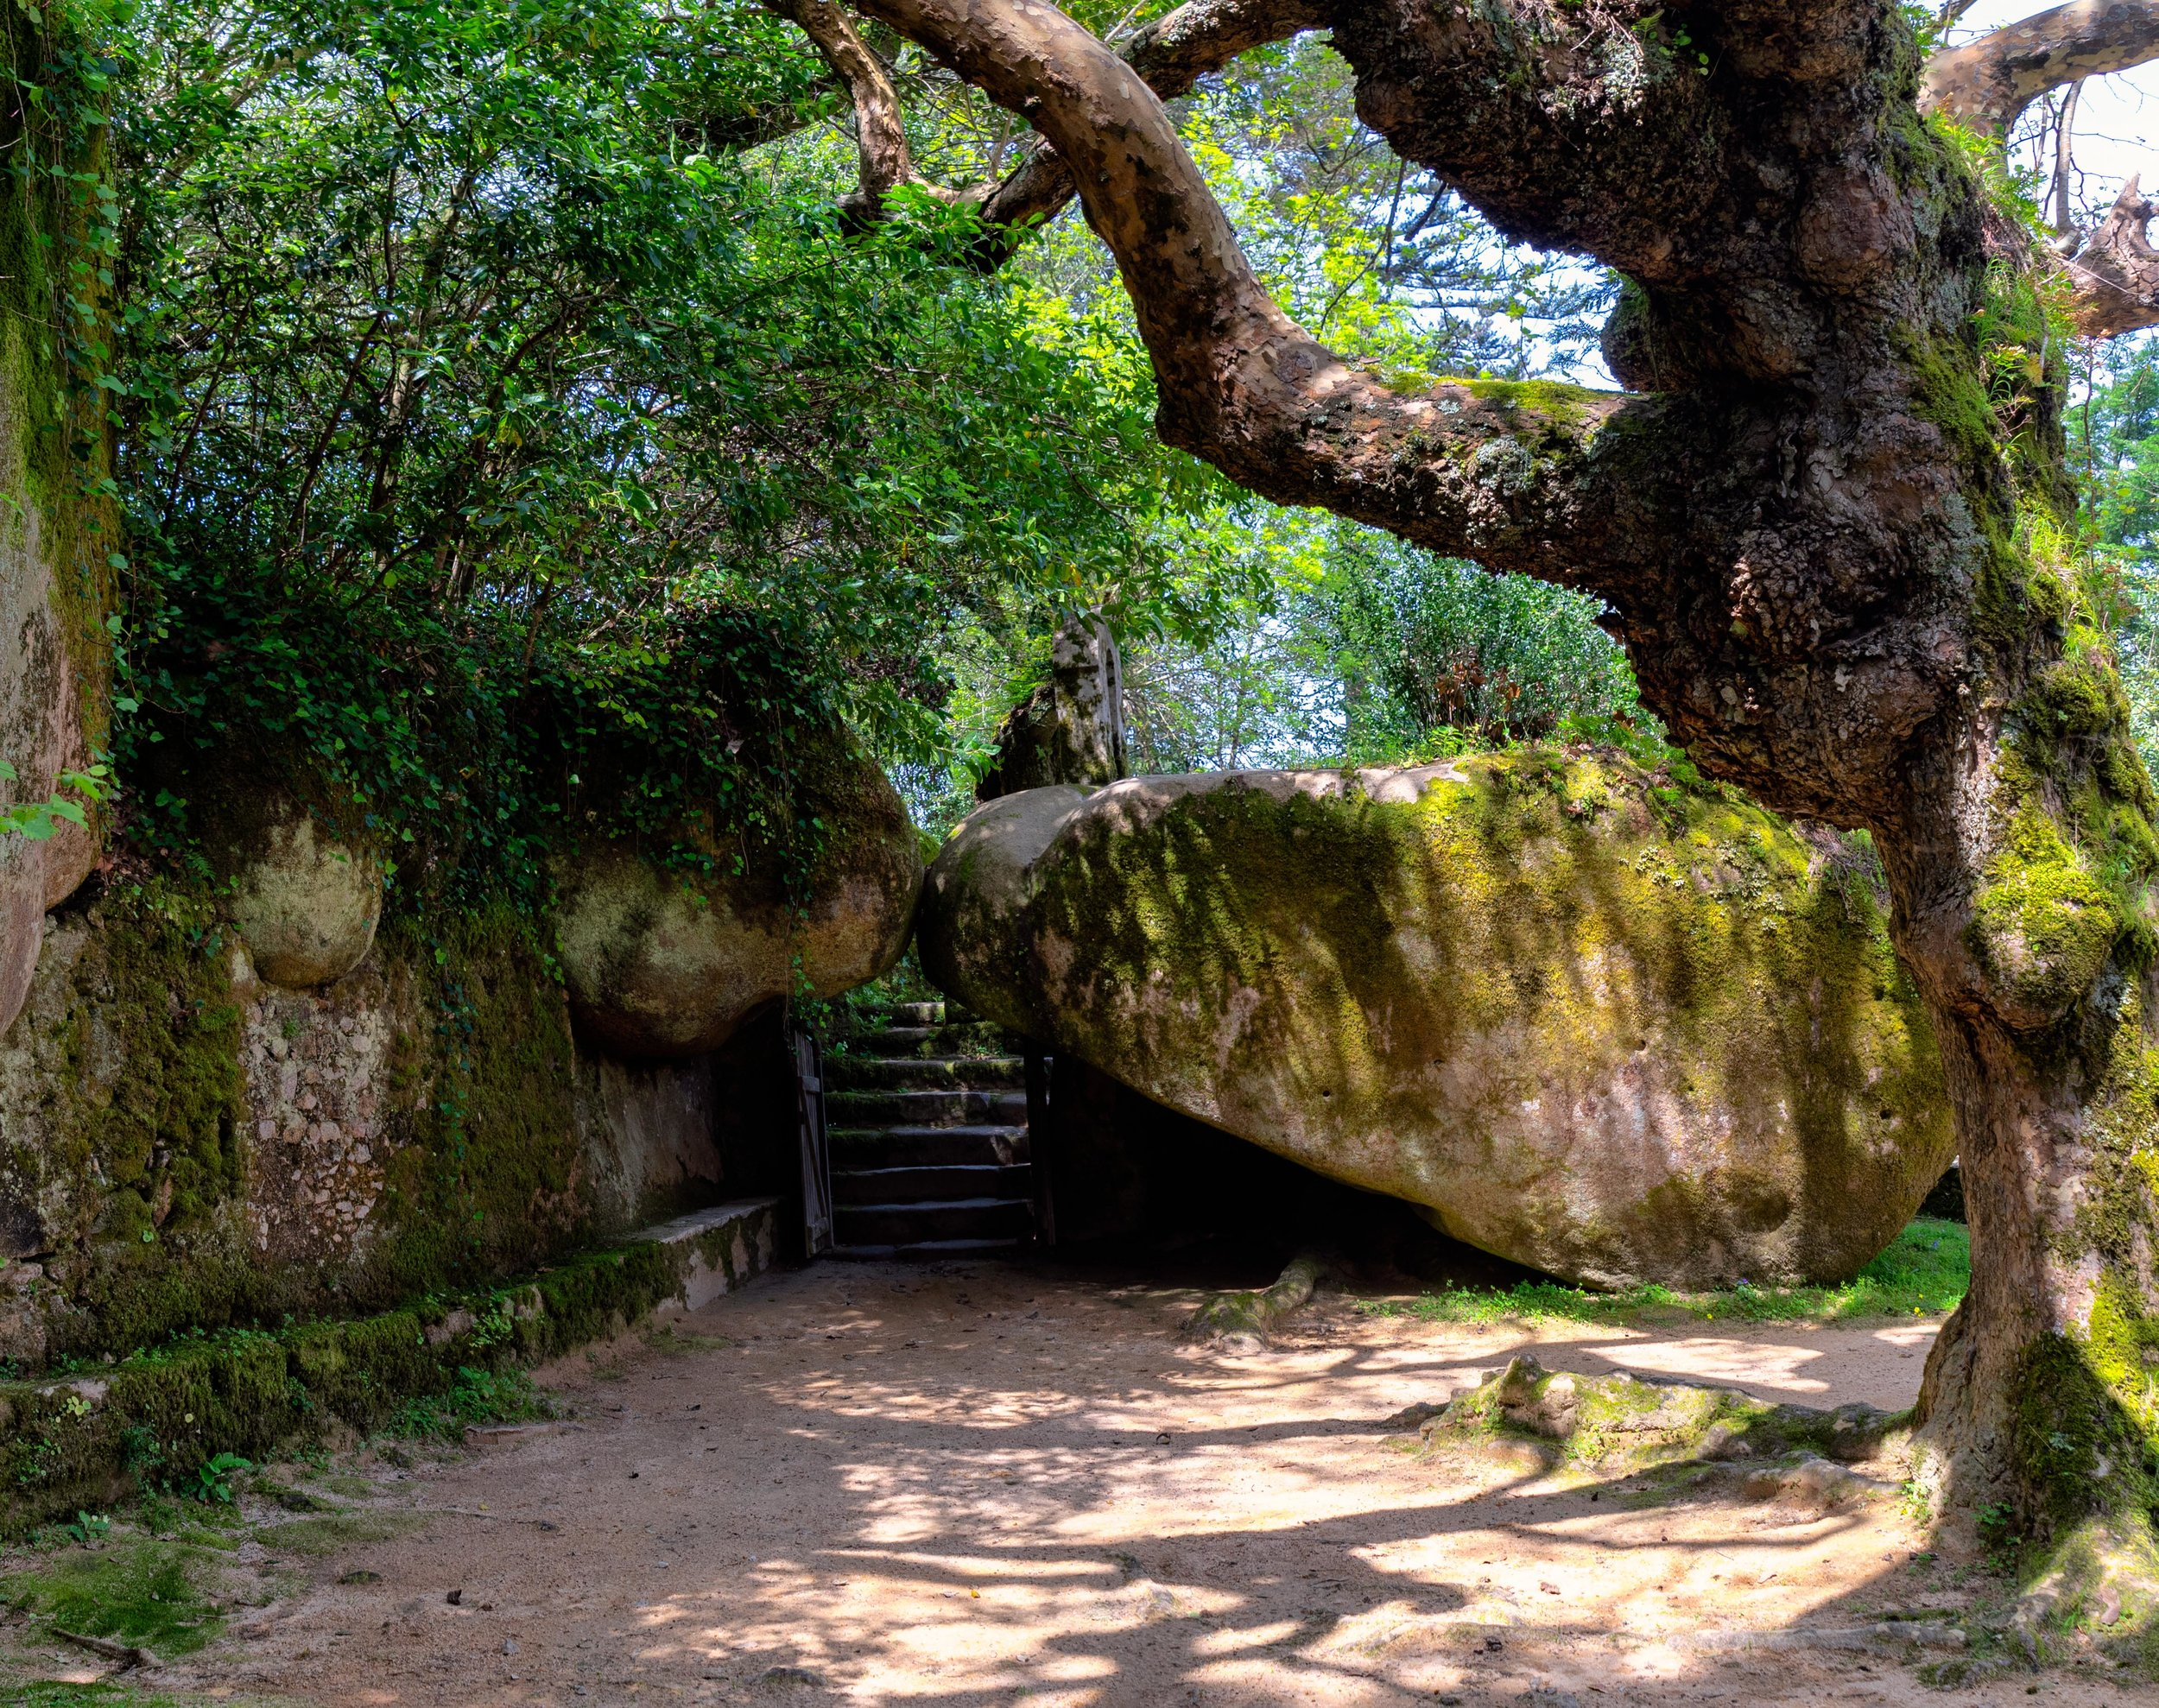 Portugal. Travel. Sintra. Sunshine. Hotel. History. view. room with a view. pena palace.  palace. town. old town. castle. castelo dos mouros. on the bridge. Convent of the Capuchos. tree.jpg